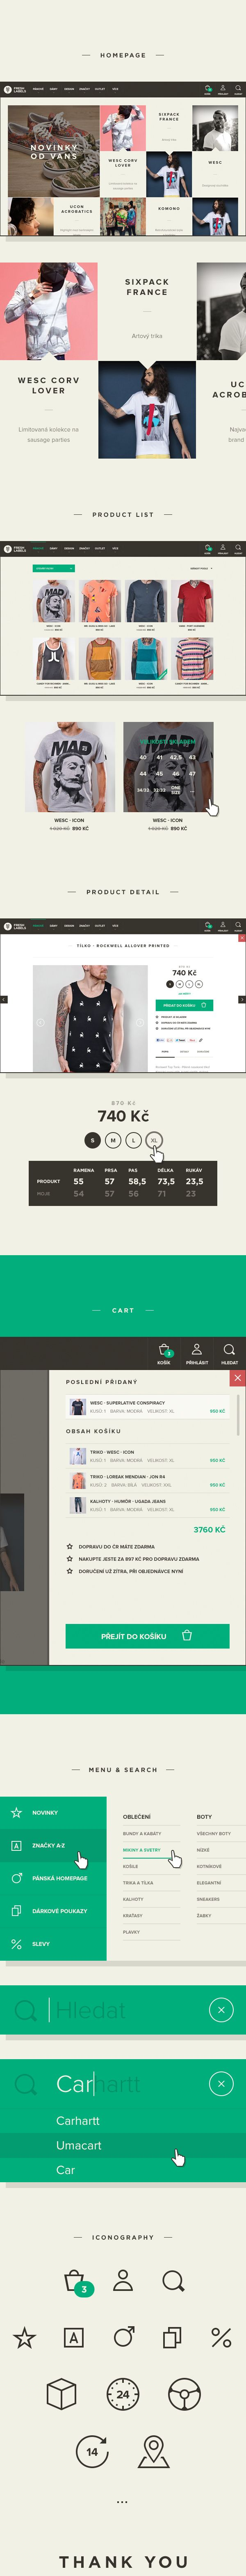 Freshlabels: Online fashion store by Filip Slováček, via Behance